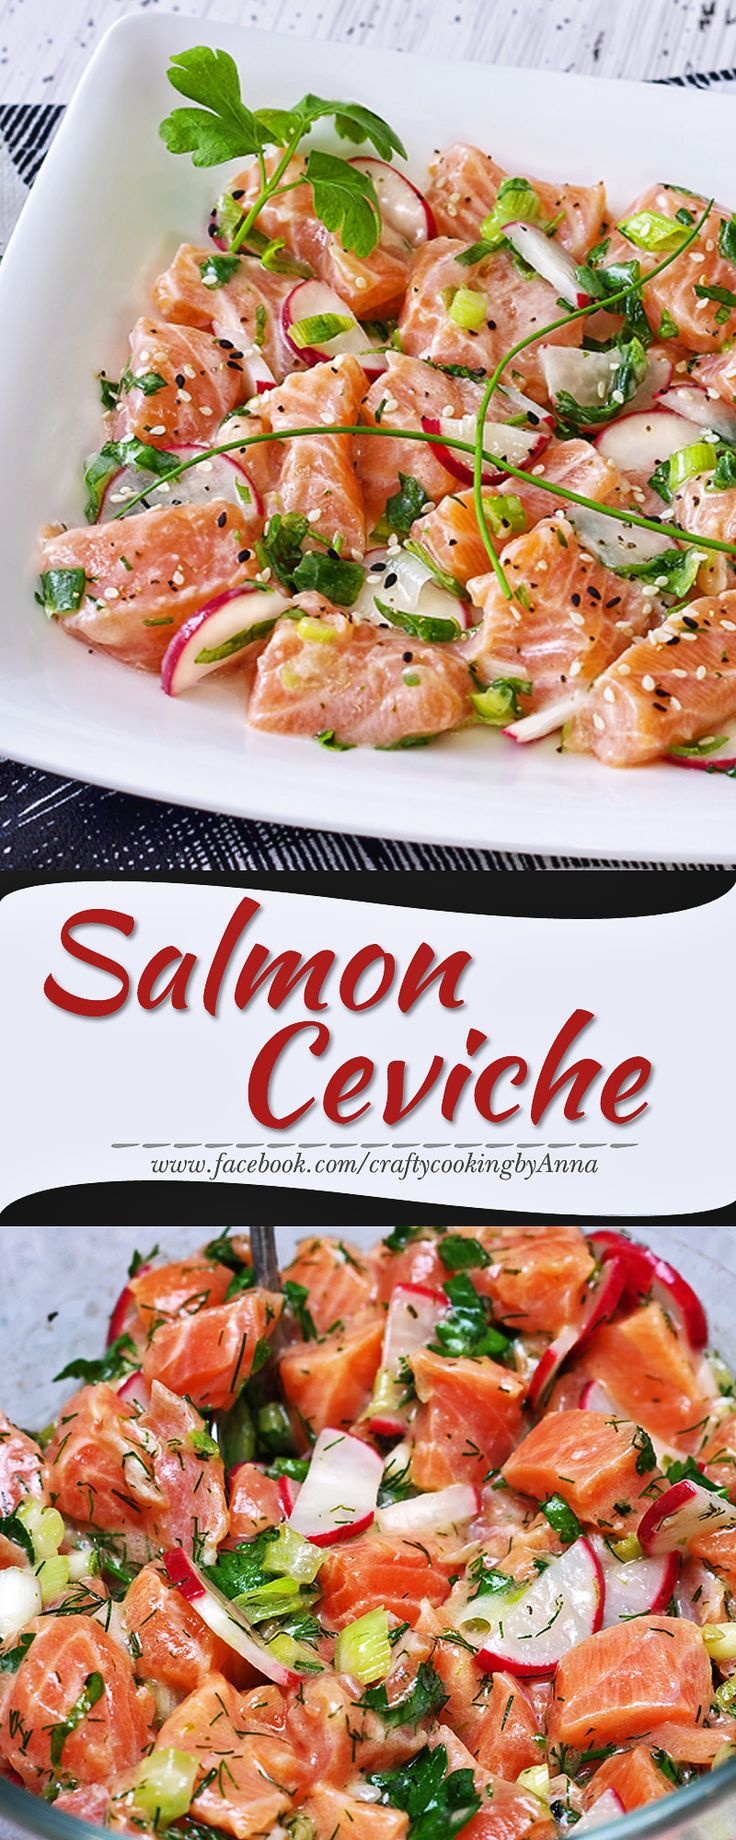 Salmon Ceviche! #Easy #Delicious: